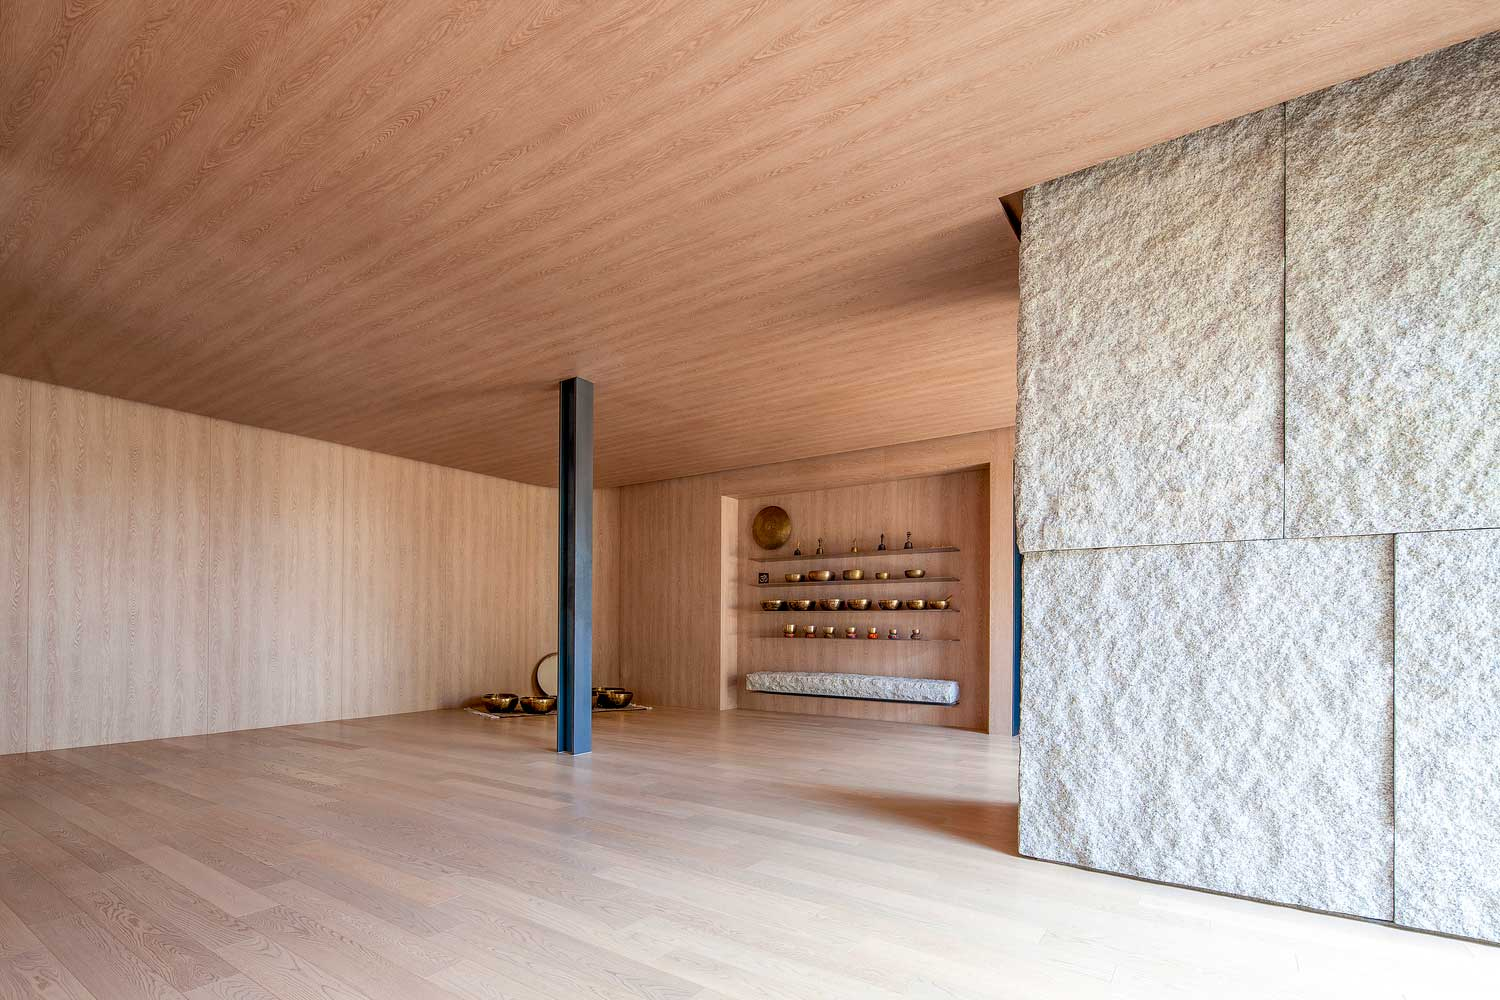 The Yoga studio uses a range of textures to enliven the five senses: wooden ceilings, concrete pullars and steel supports also reflect the connection between the manmade and the natural